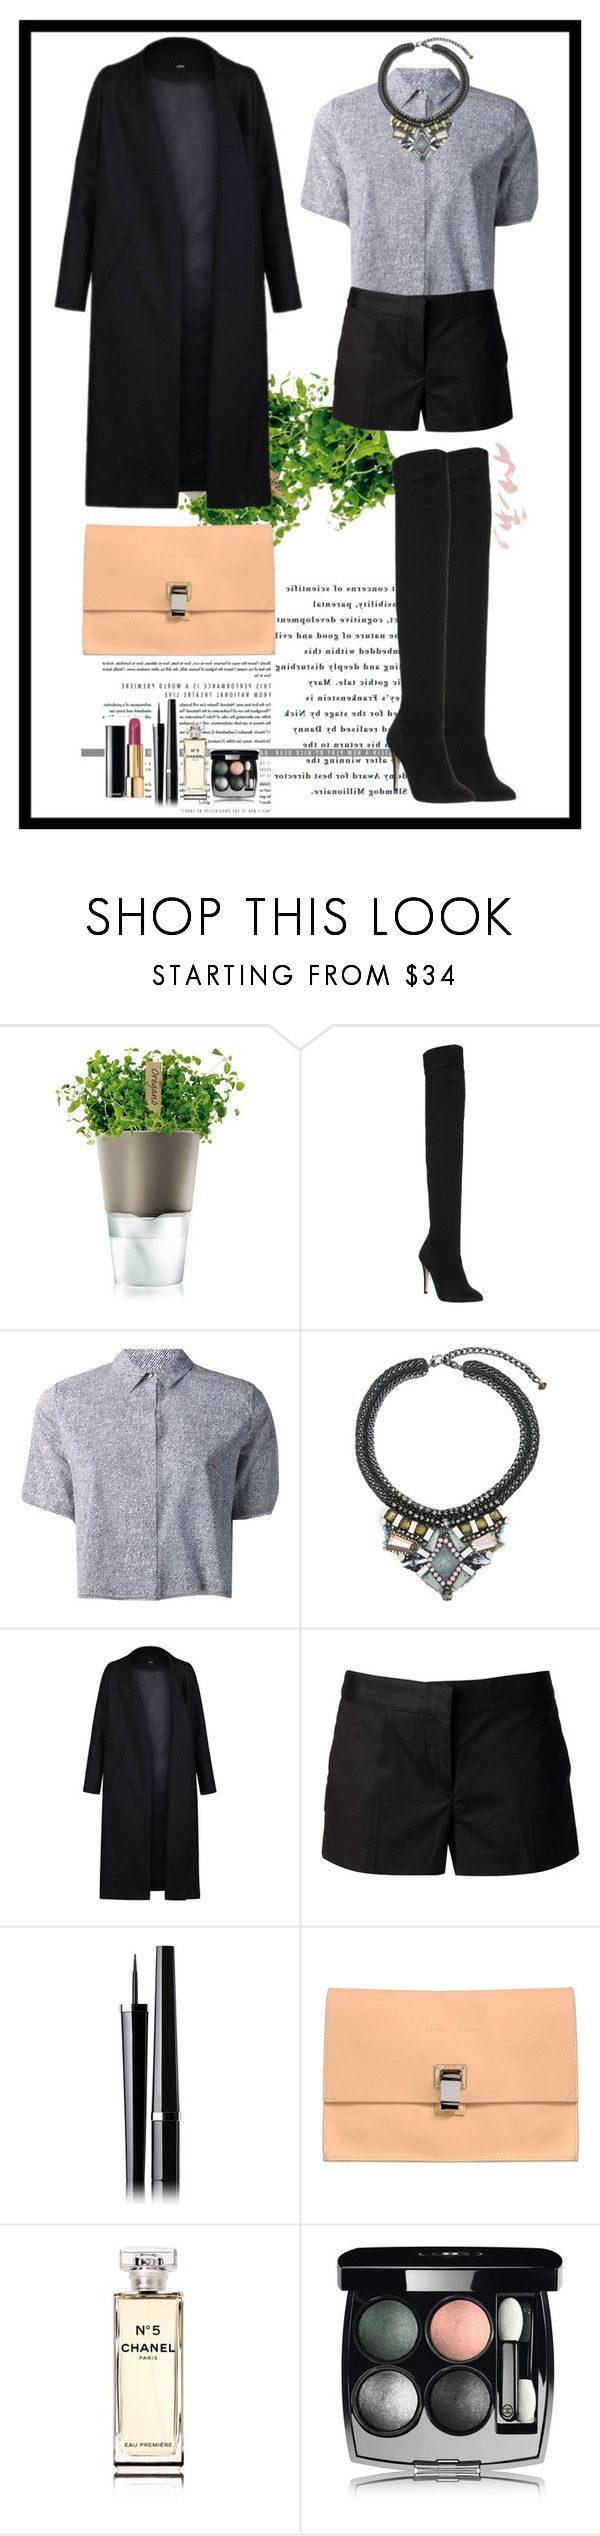 """Nameless"" by pinklowes ❤ liked on Polyvore featuring Eva Solo, Office, T By Alexander Wang, Nocturne, Non, MICHAEL Michael Kors, Chanel and Proenza Schouler"